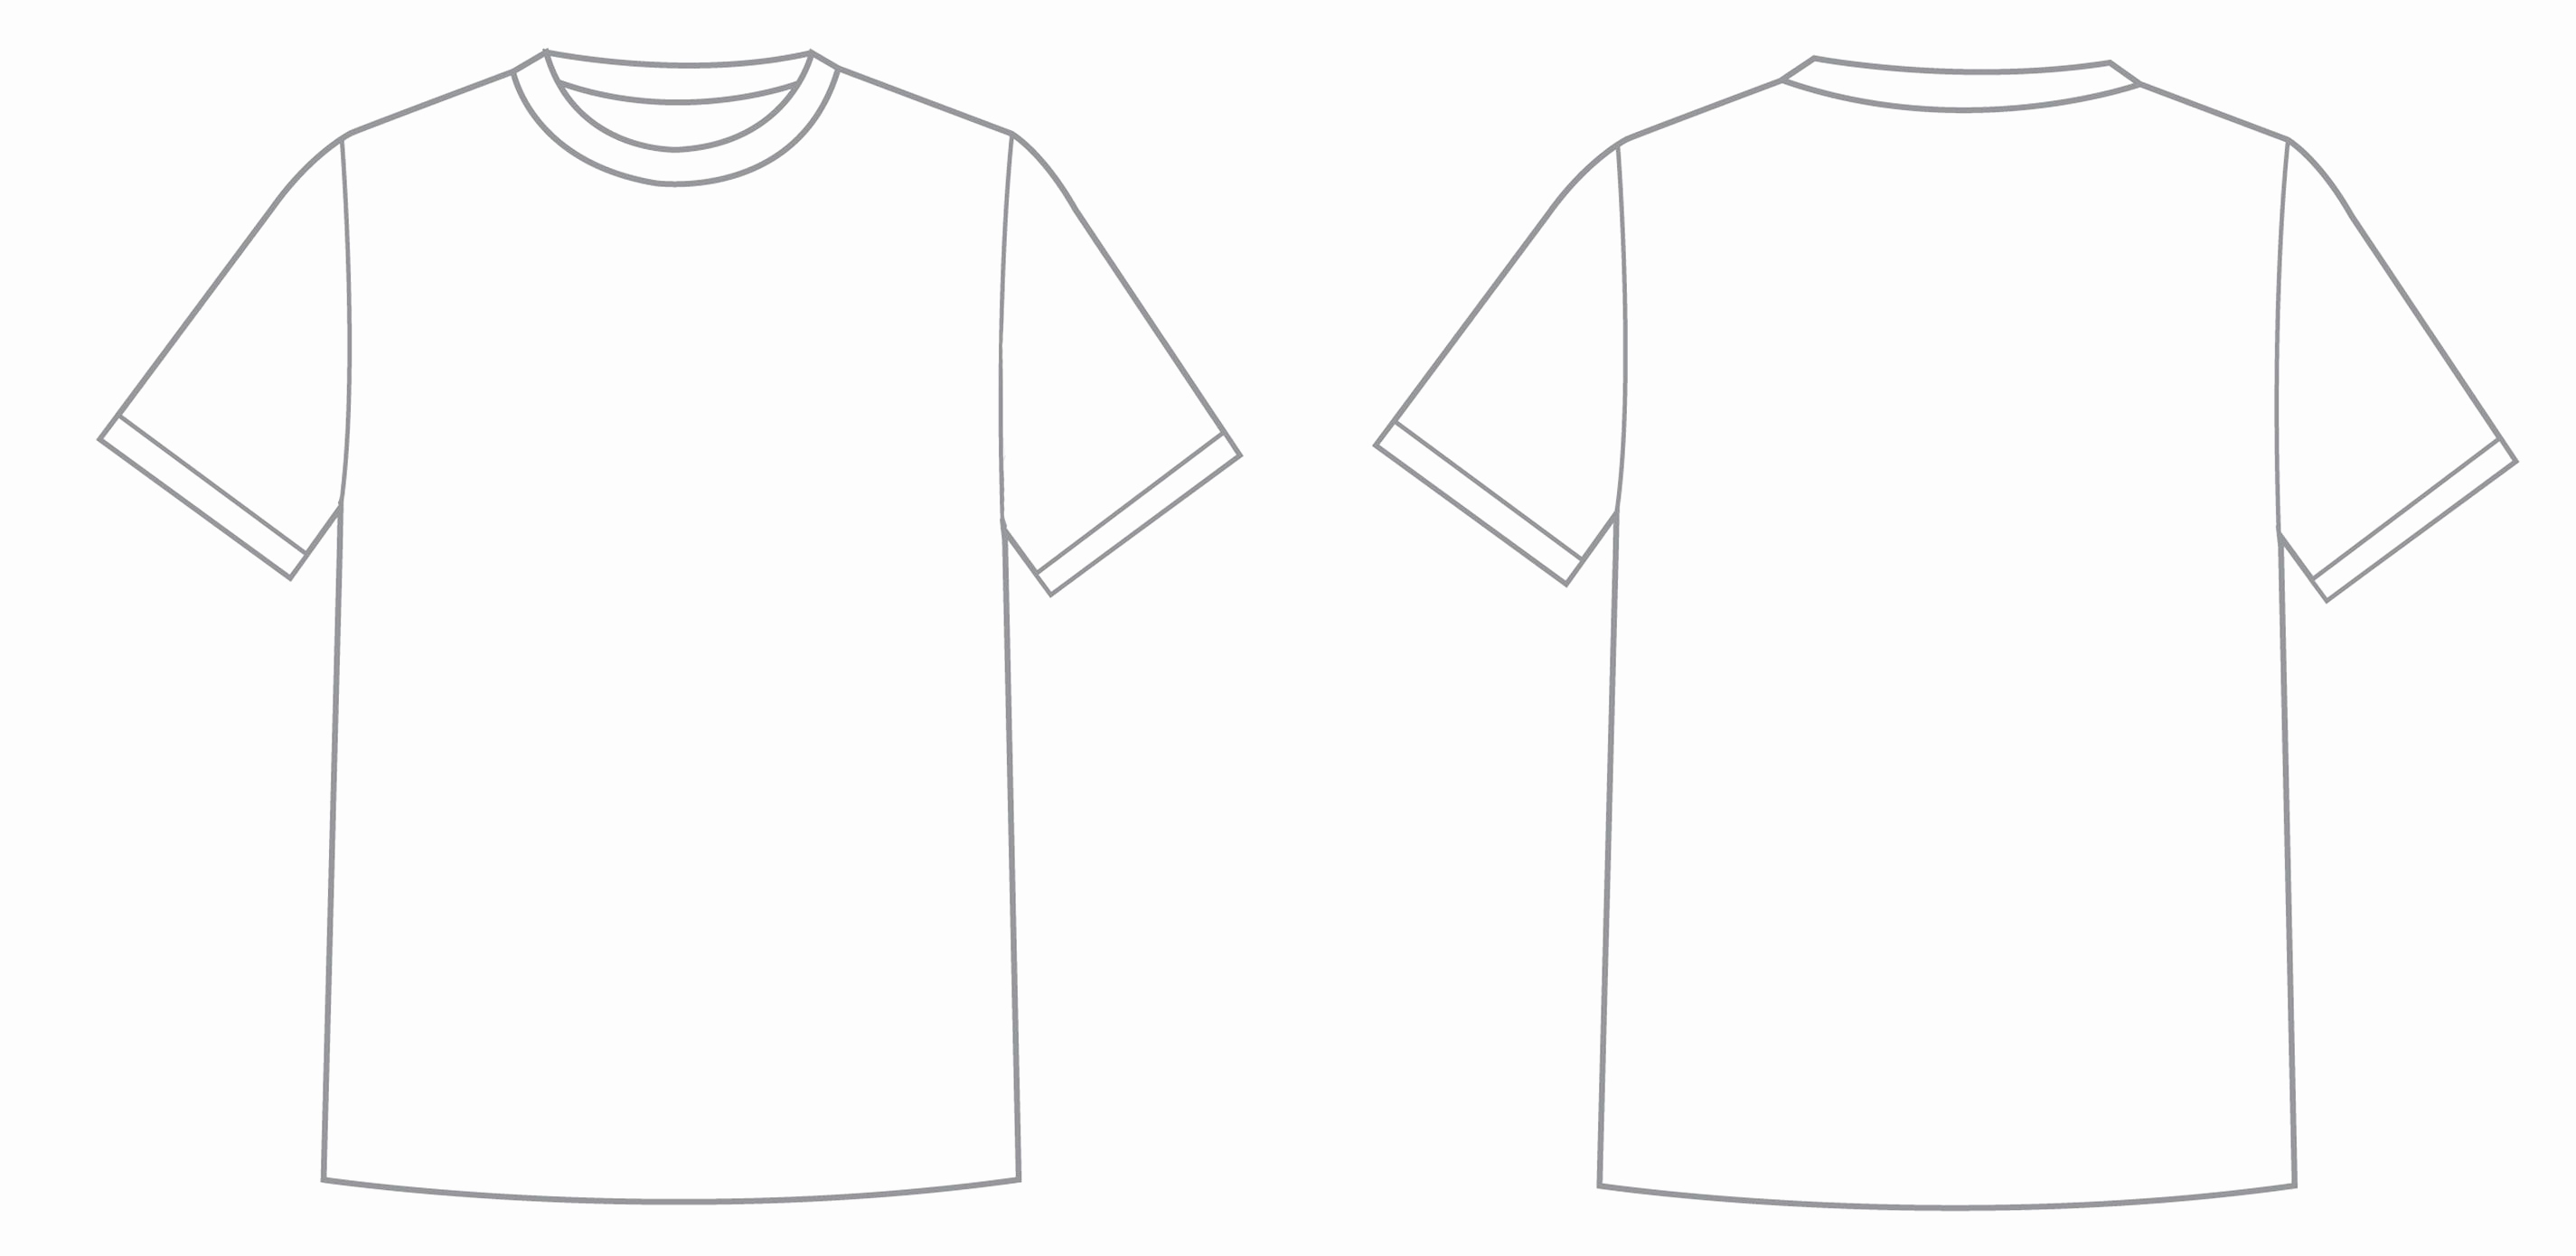 Printable T Shirt Templates New Printable Tshirt Template Printable 360 Degree